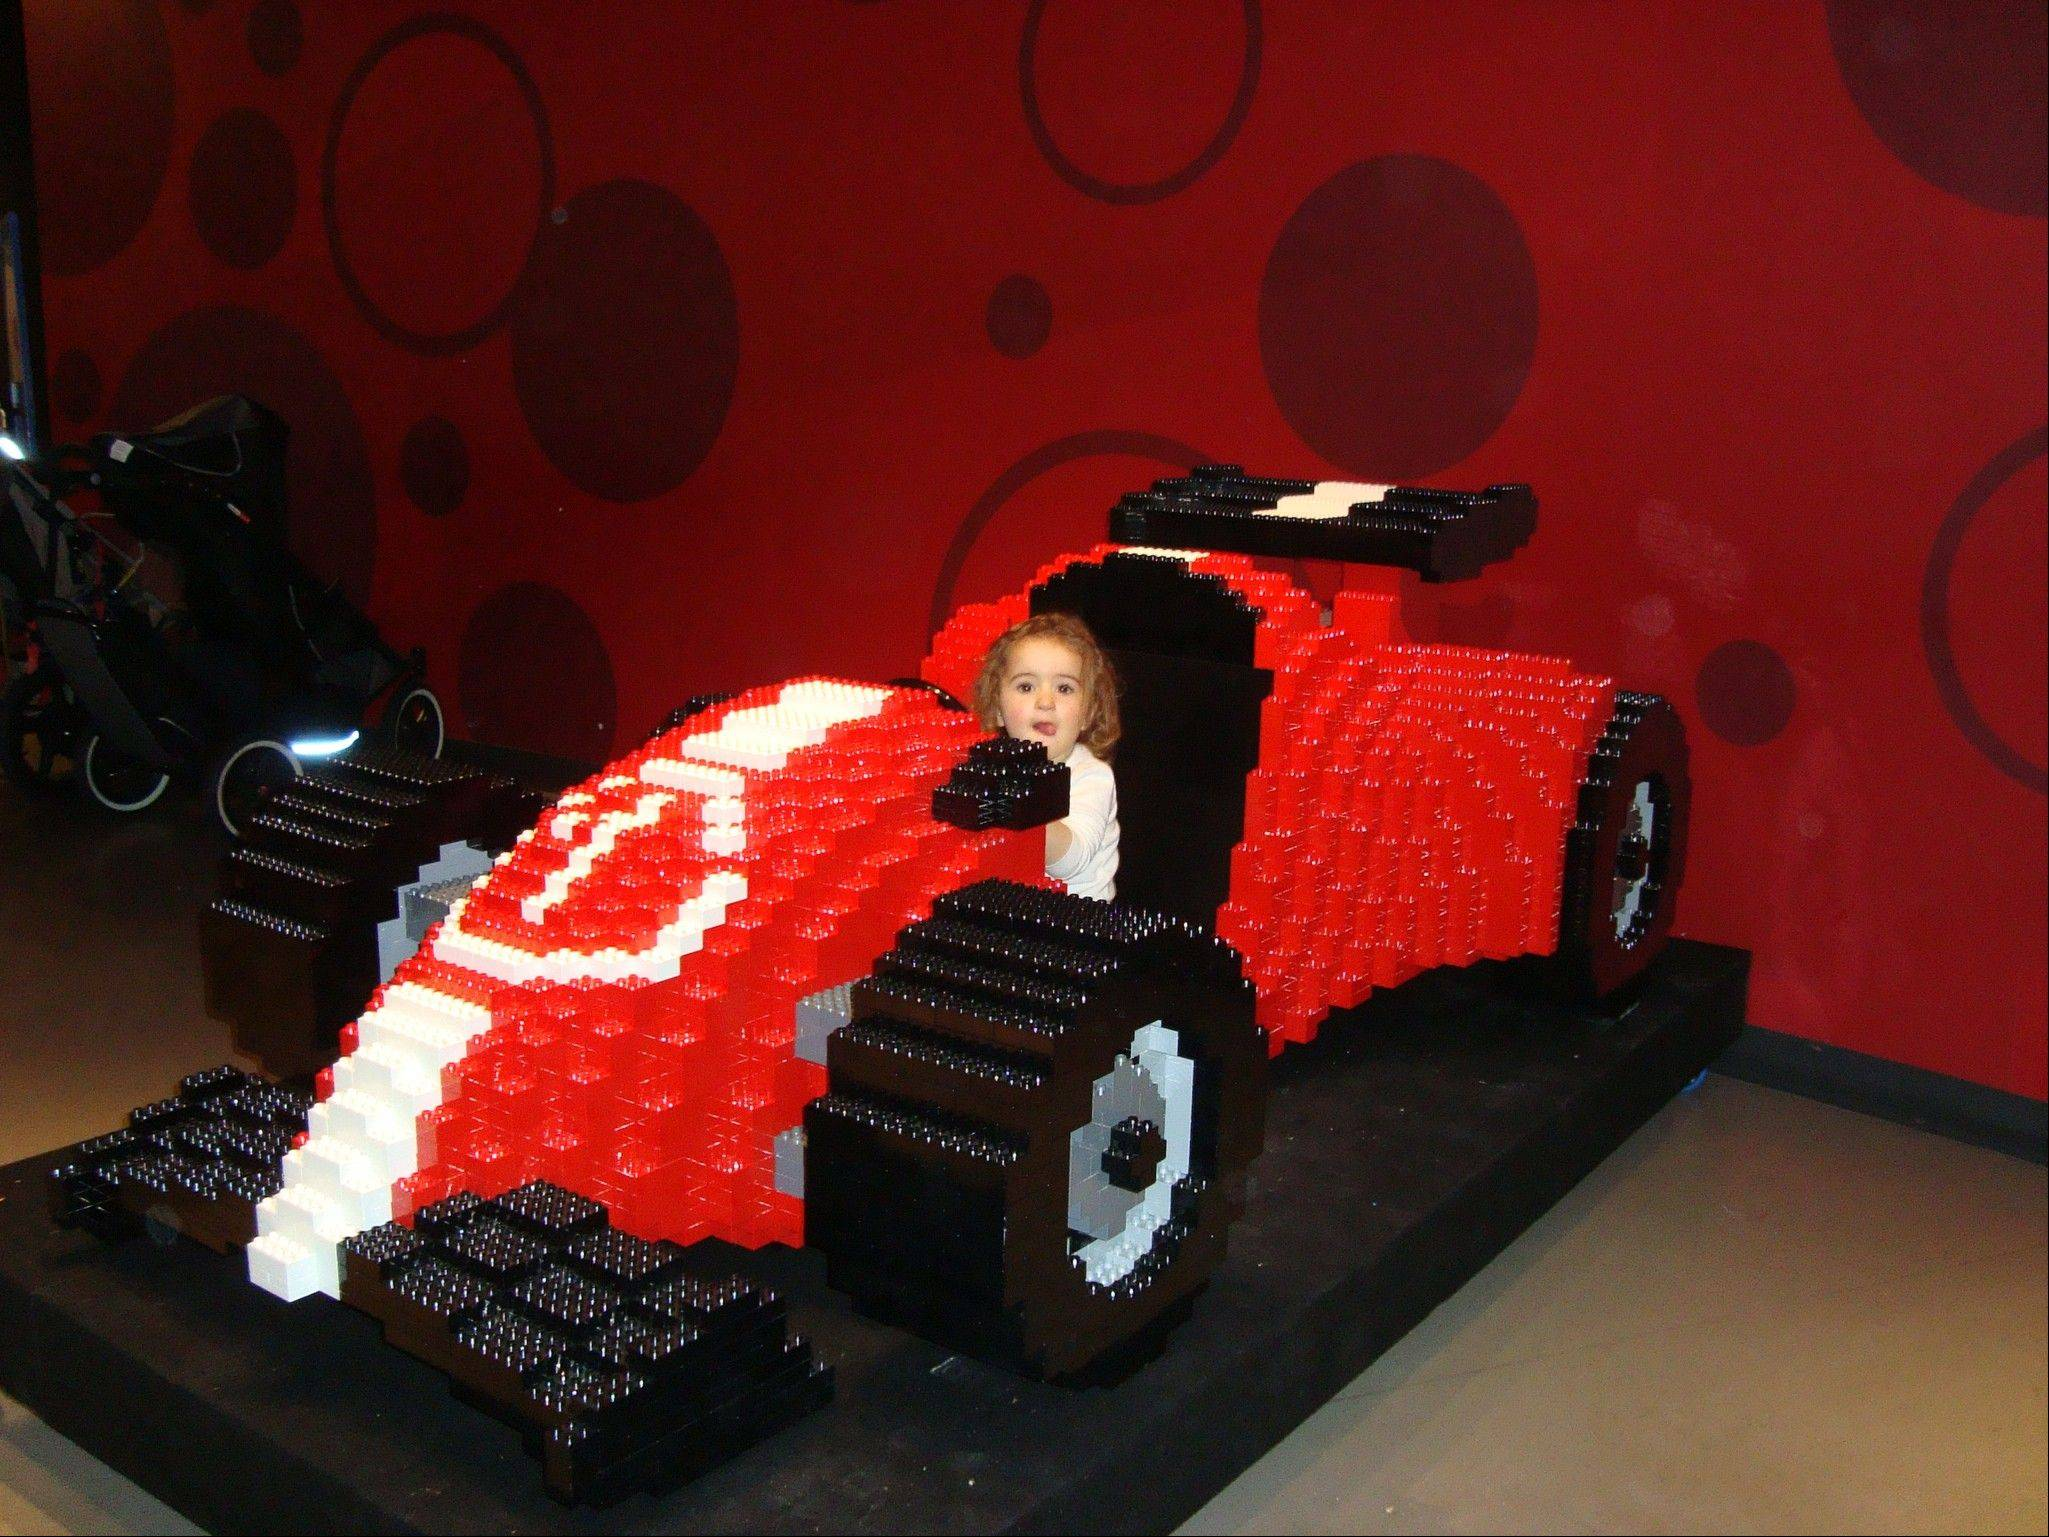 """LEGO Travel Adventure"" is one of three new exhibits opening this spring at the Children's Museum of Indianapolis."